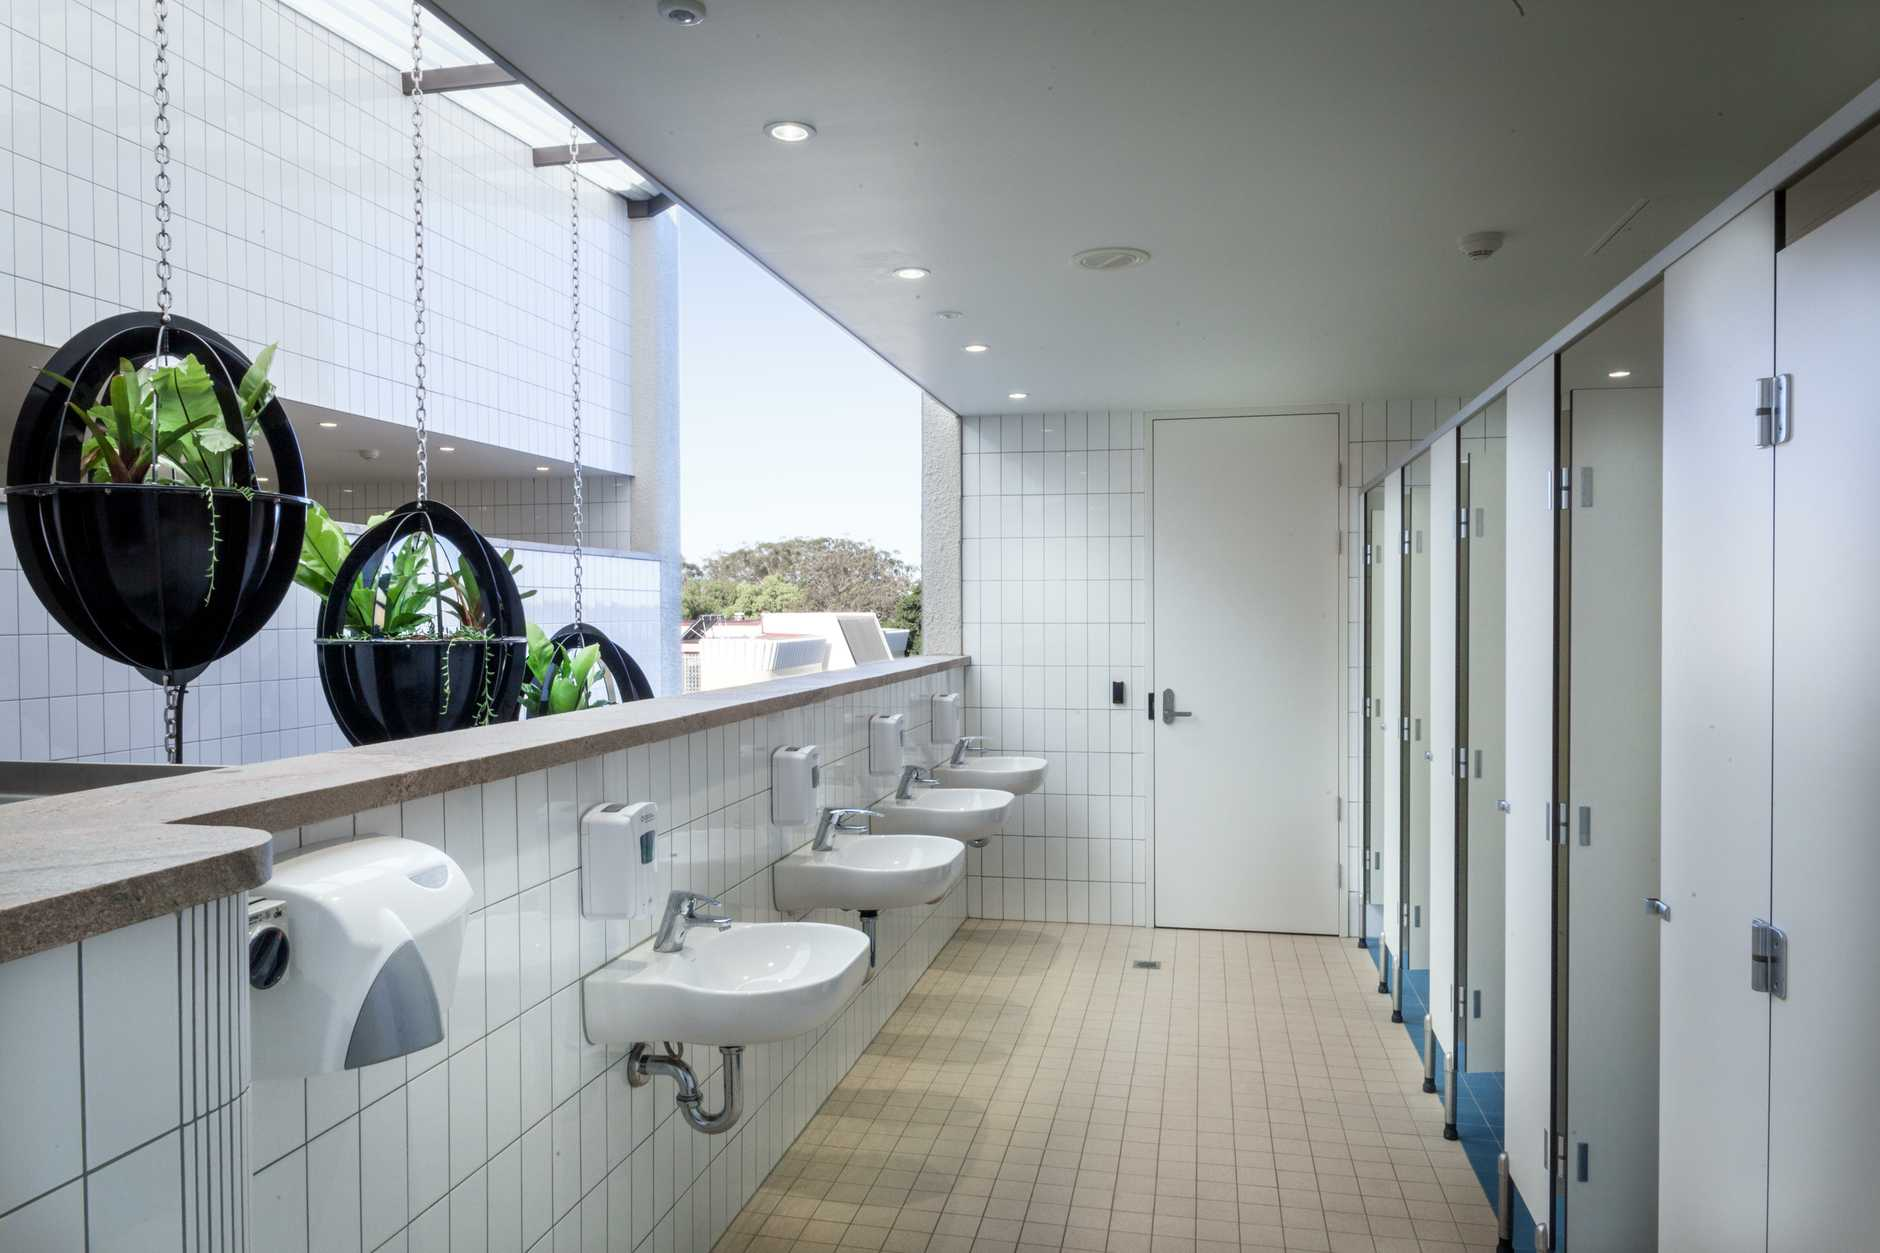 Nudgee college boarding house bathroom